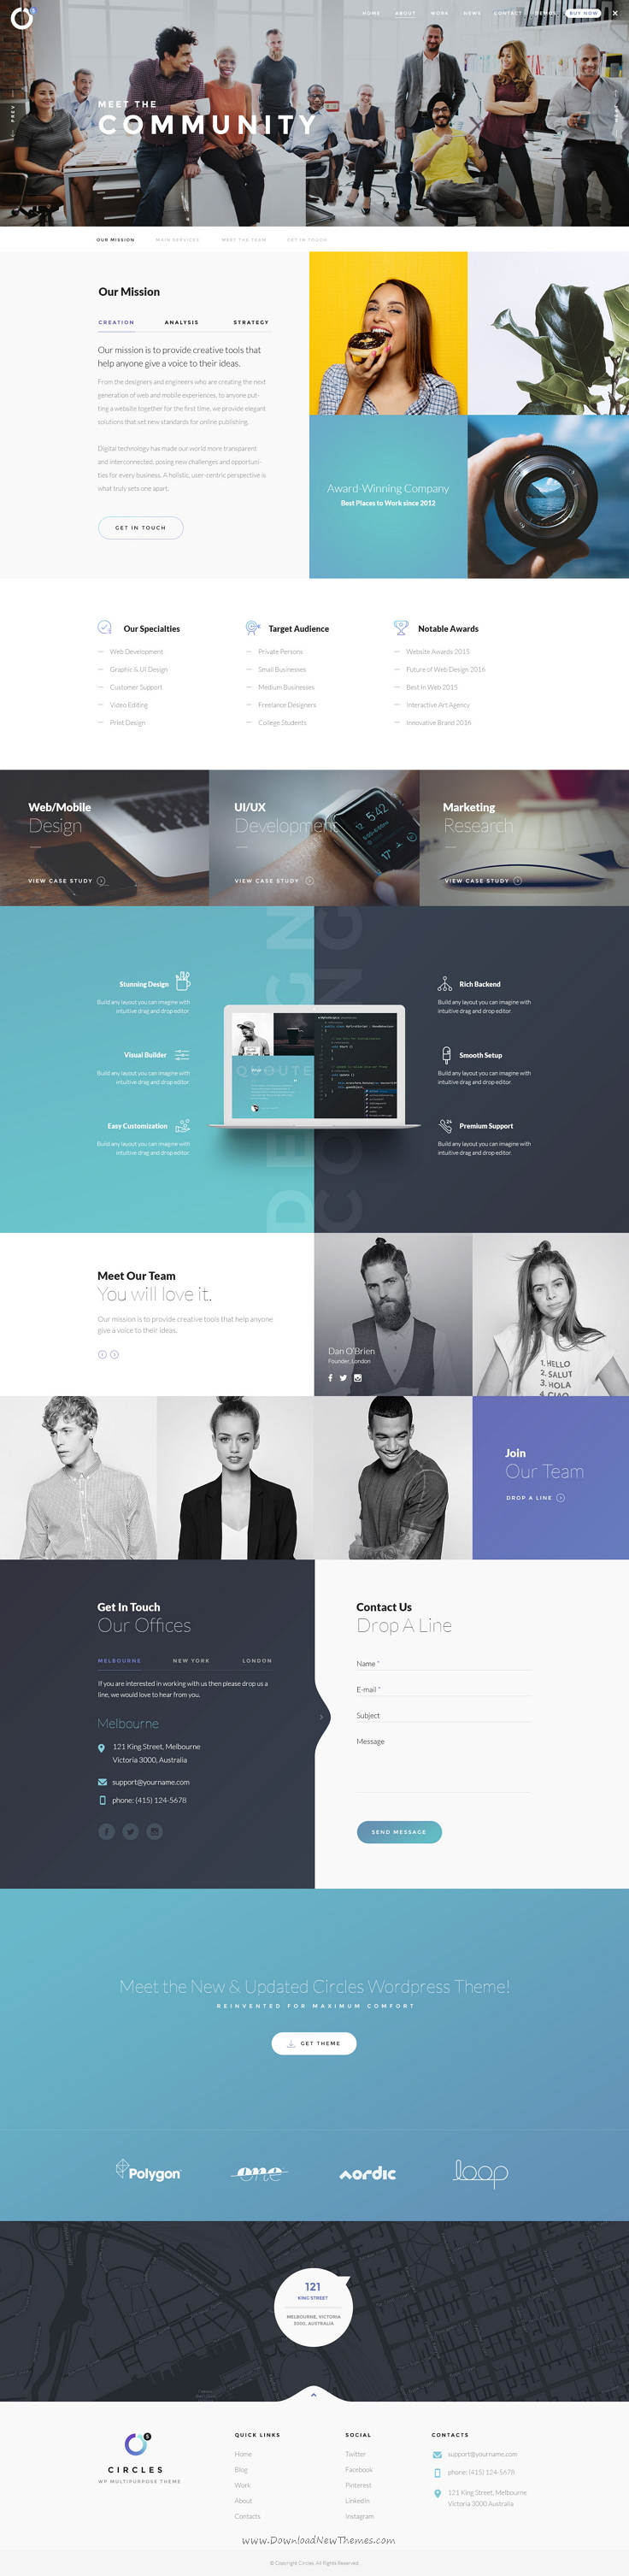 Circles 5 Mutil Concept Creative Psd Template Web Design Inspiration Web Design Web Layout Design